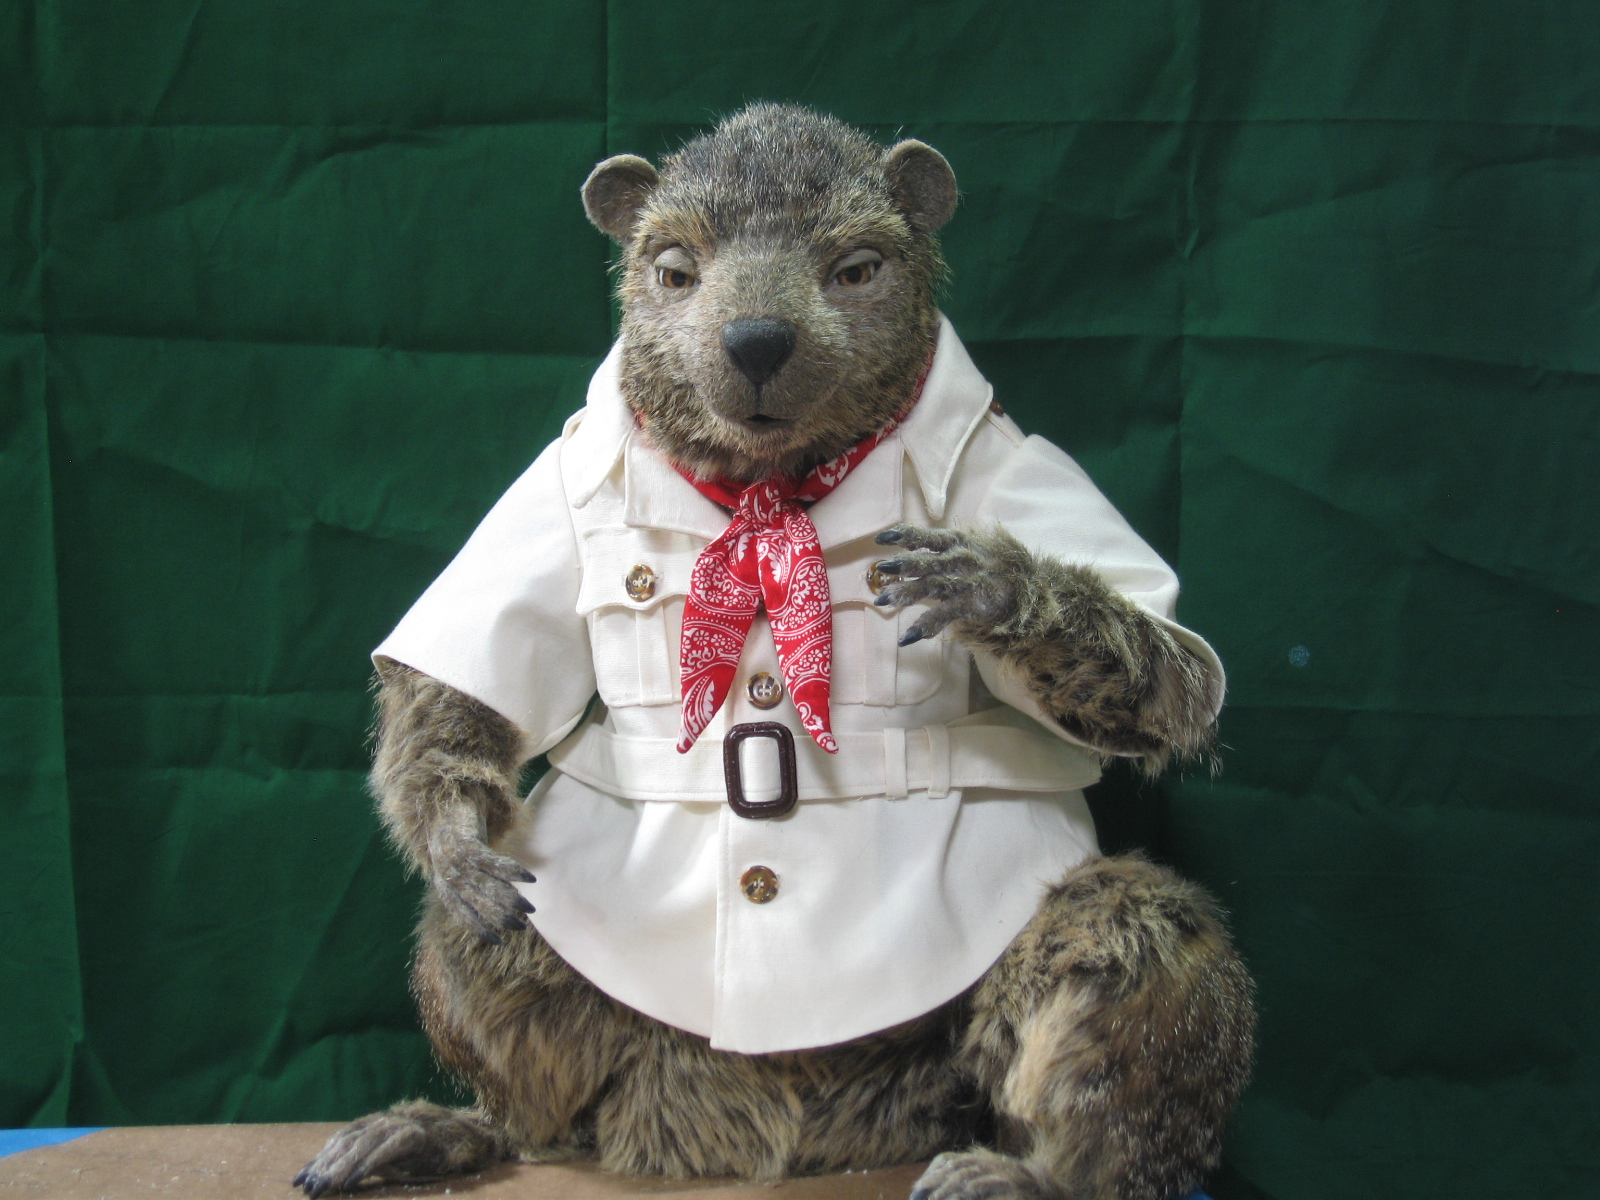 the character shop  gus the groundhog celebrates his 40th